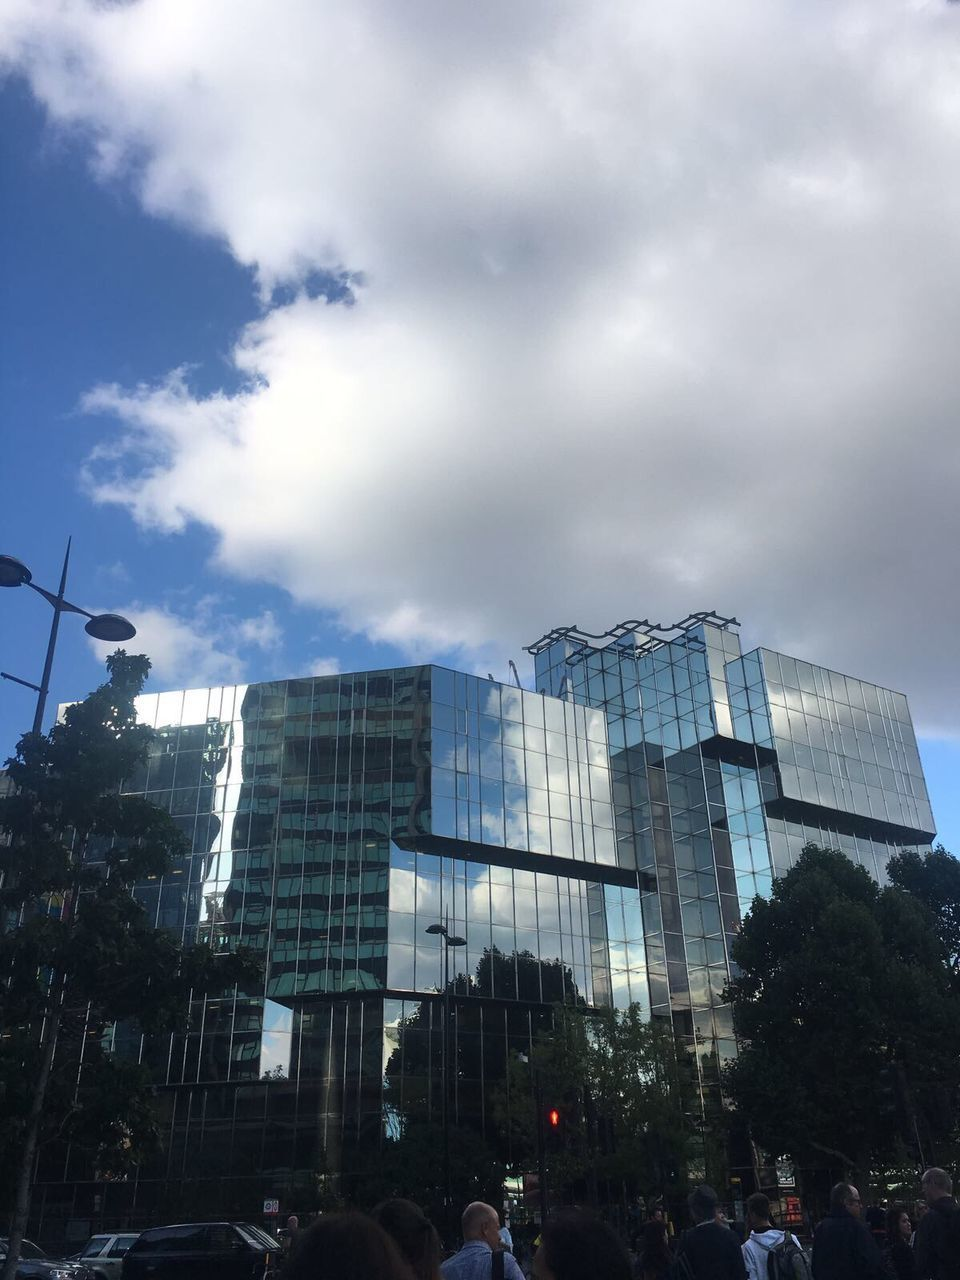 architecture, built structure, sky, building exterior, cloud - sky, modern, low angle view, day, large group of people, outdoors, skyscraper, tree, city, people